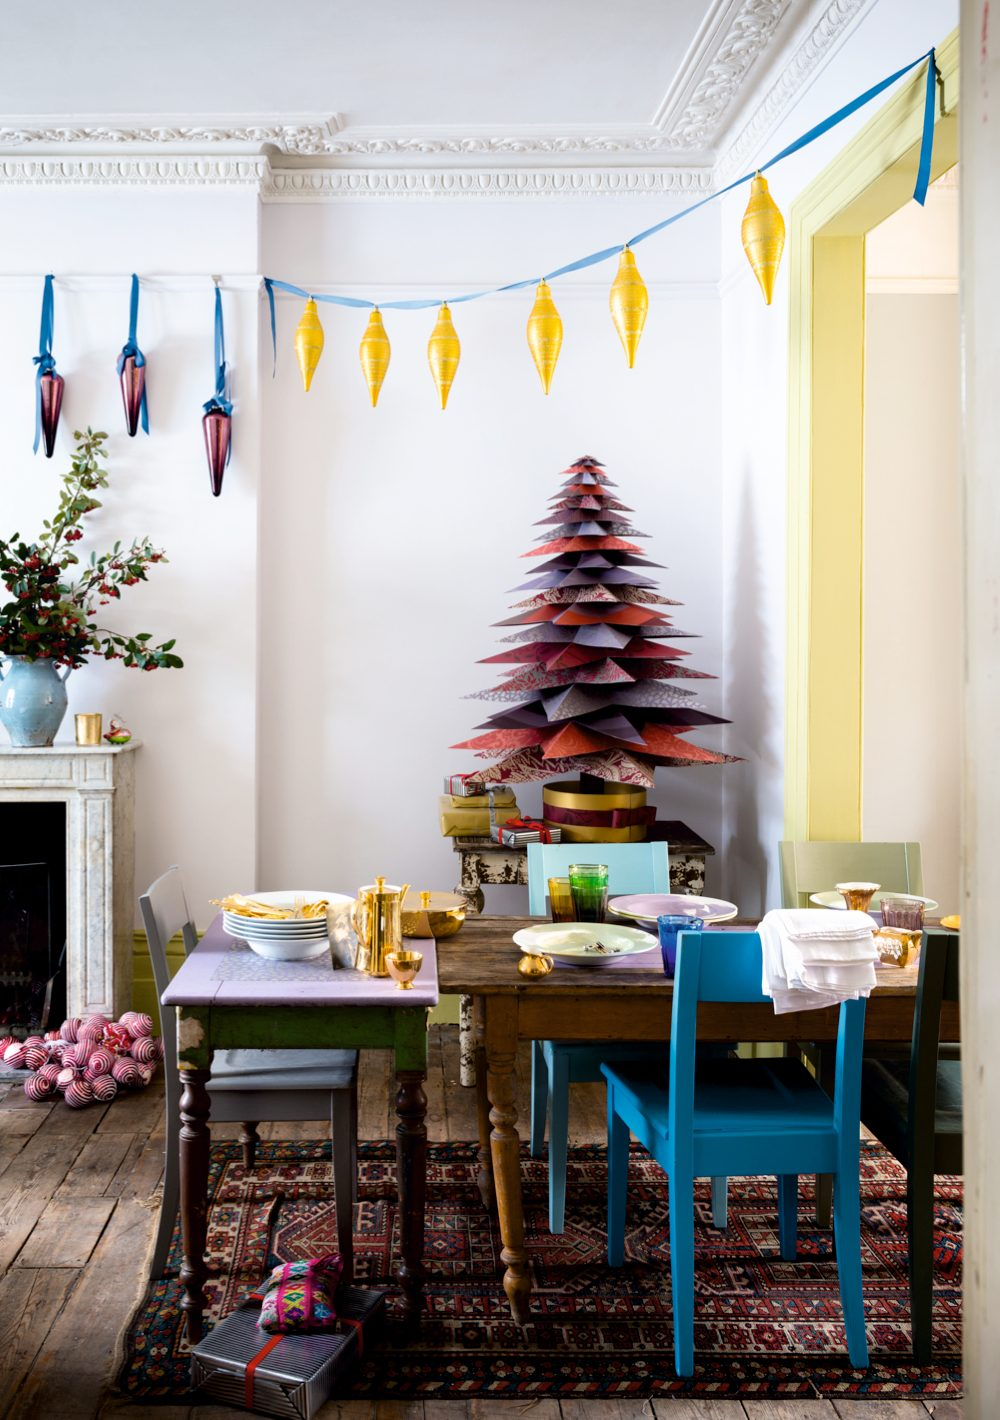 5 exciting ways to reinvent your Christmas decorating style